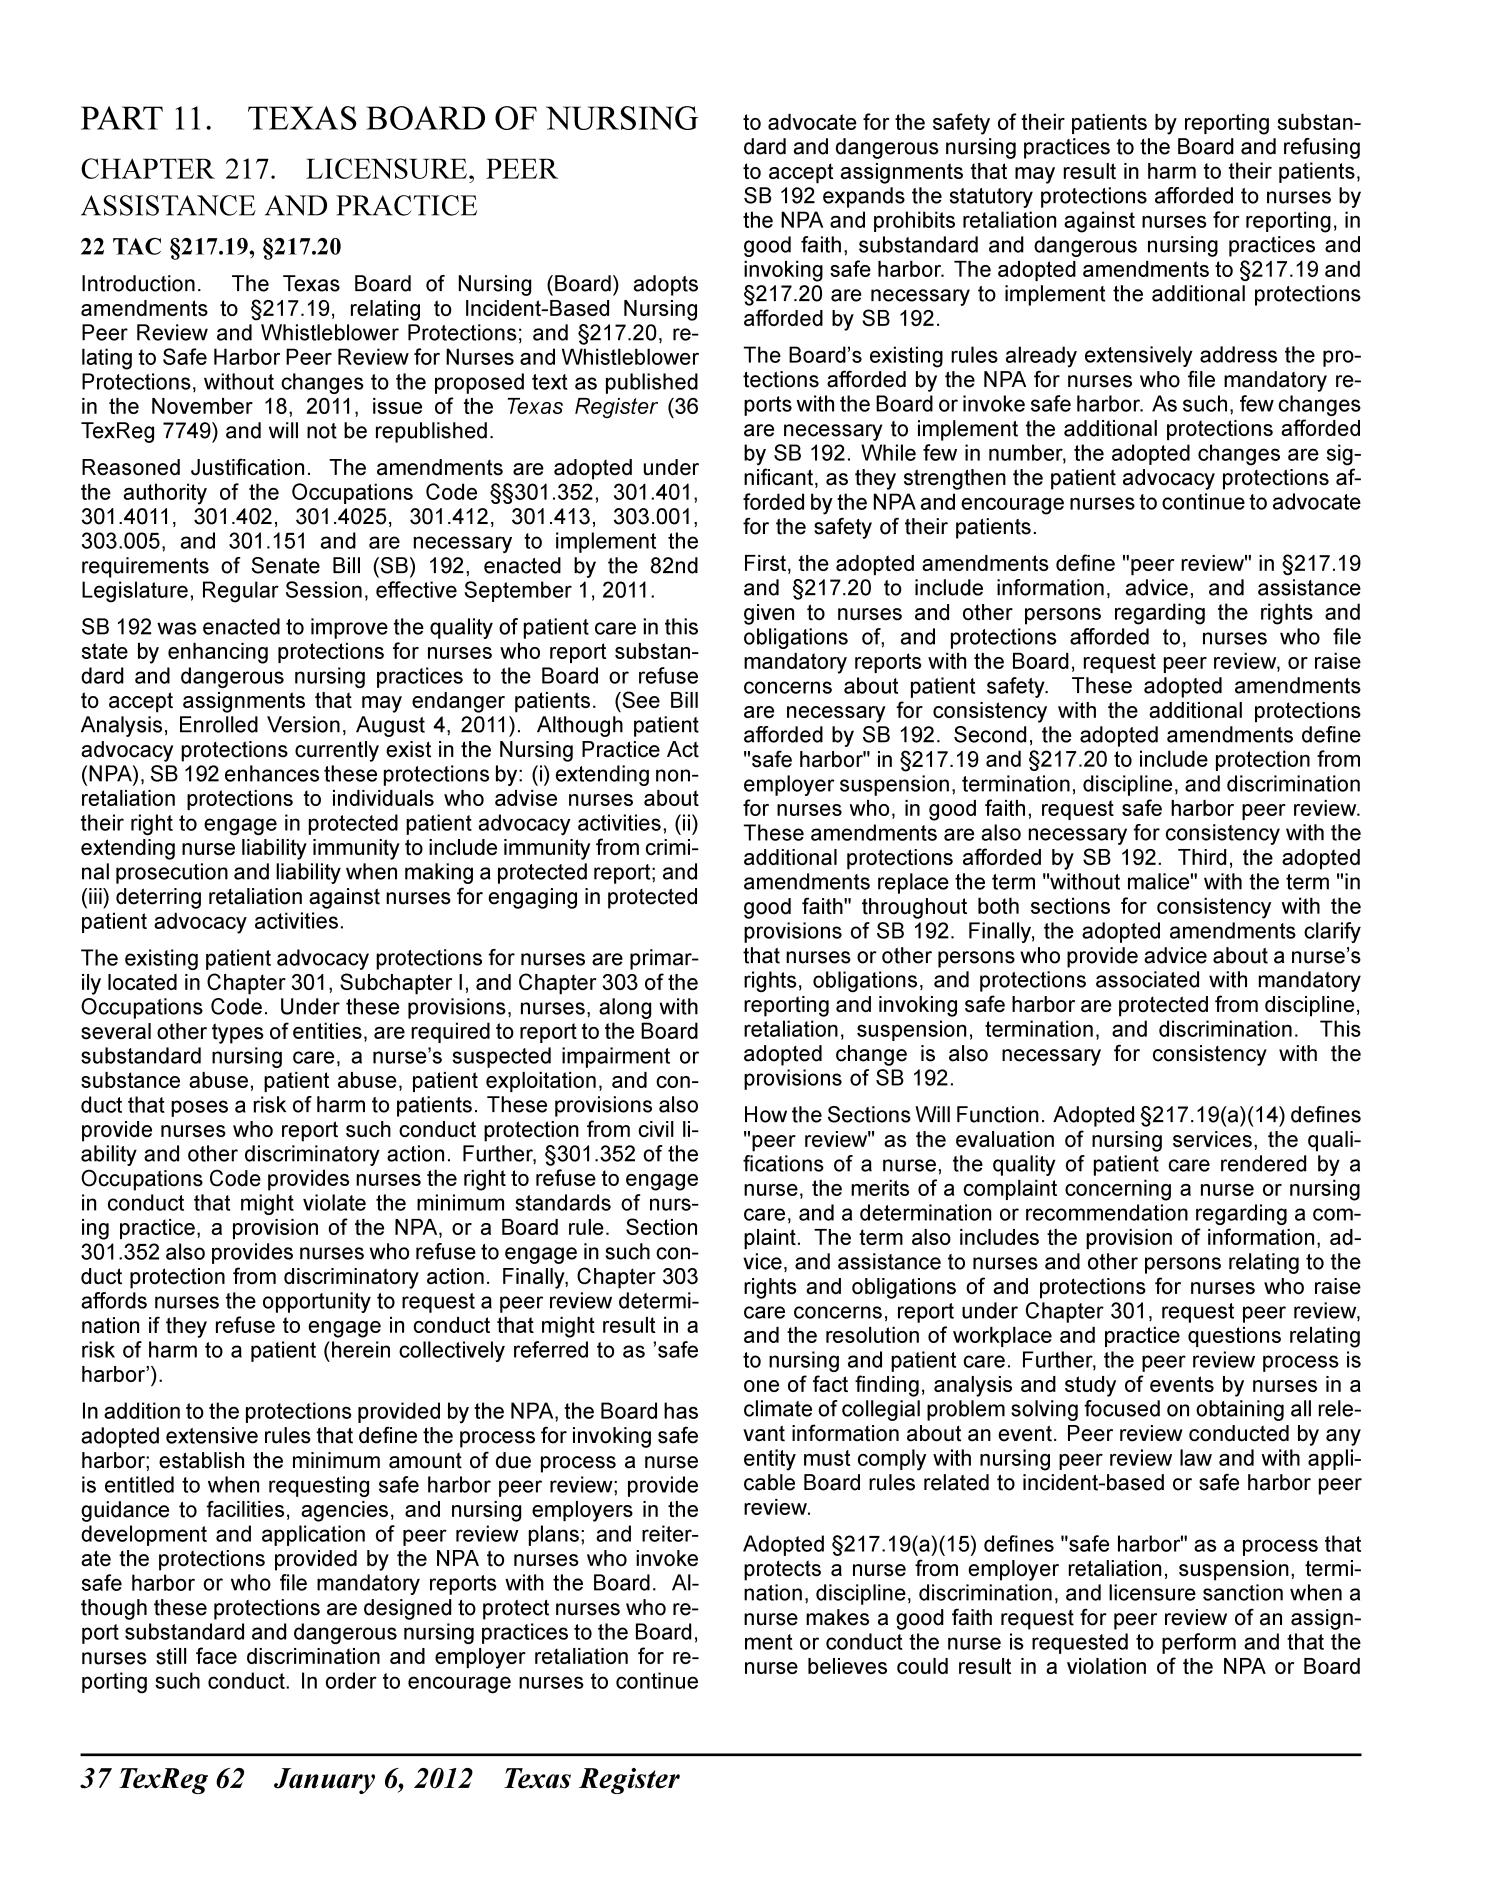 Texas Register, Volume 37, Number 1, Pages 1-84, January 6, 2012                                                                                                      62